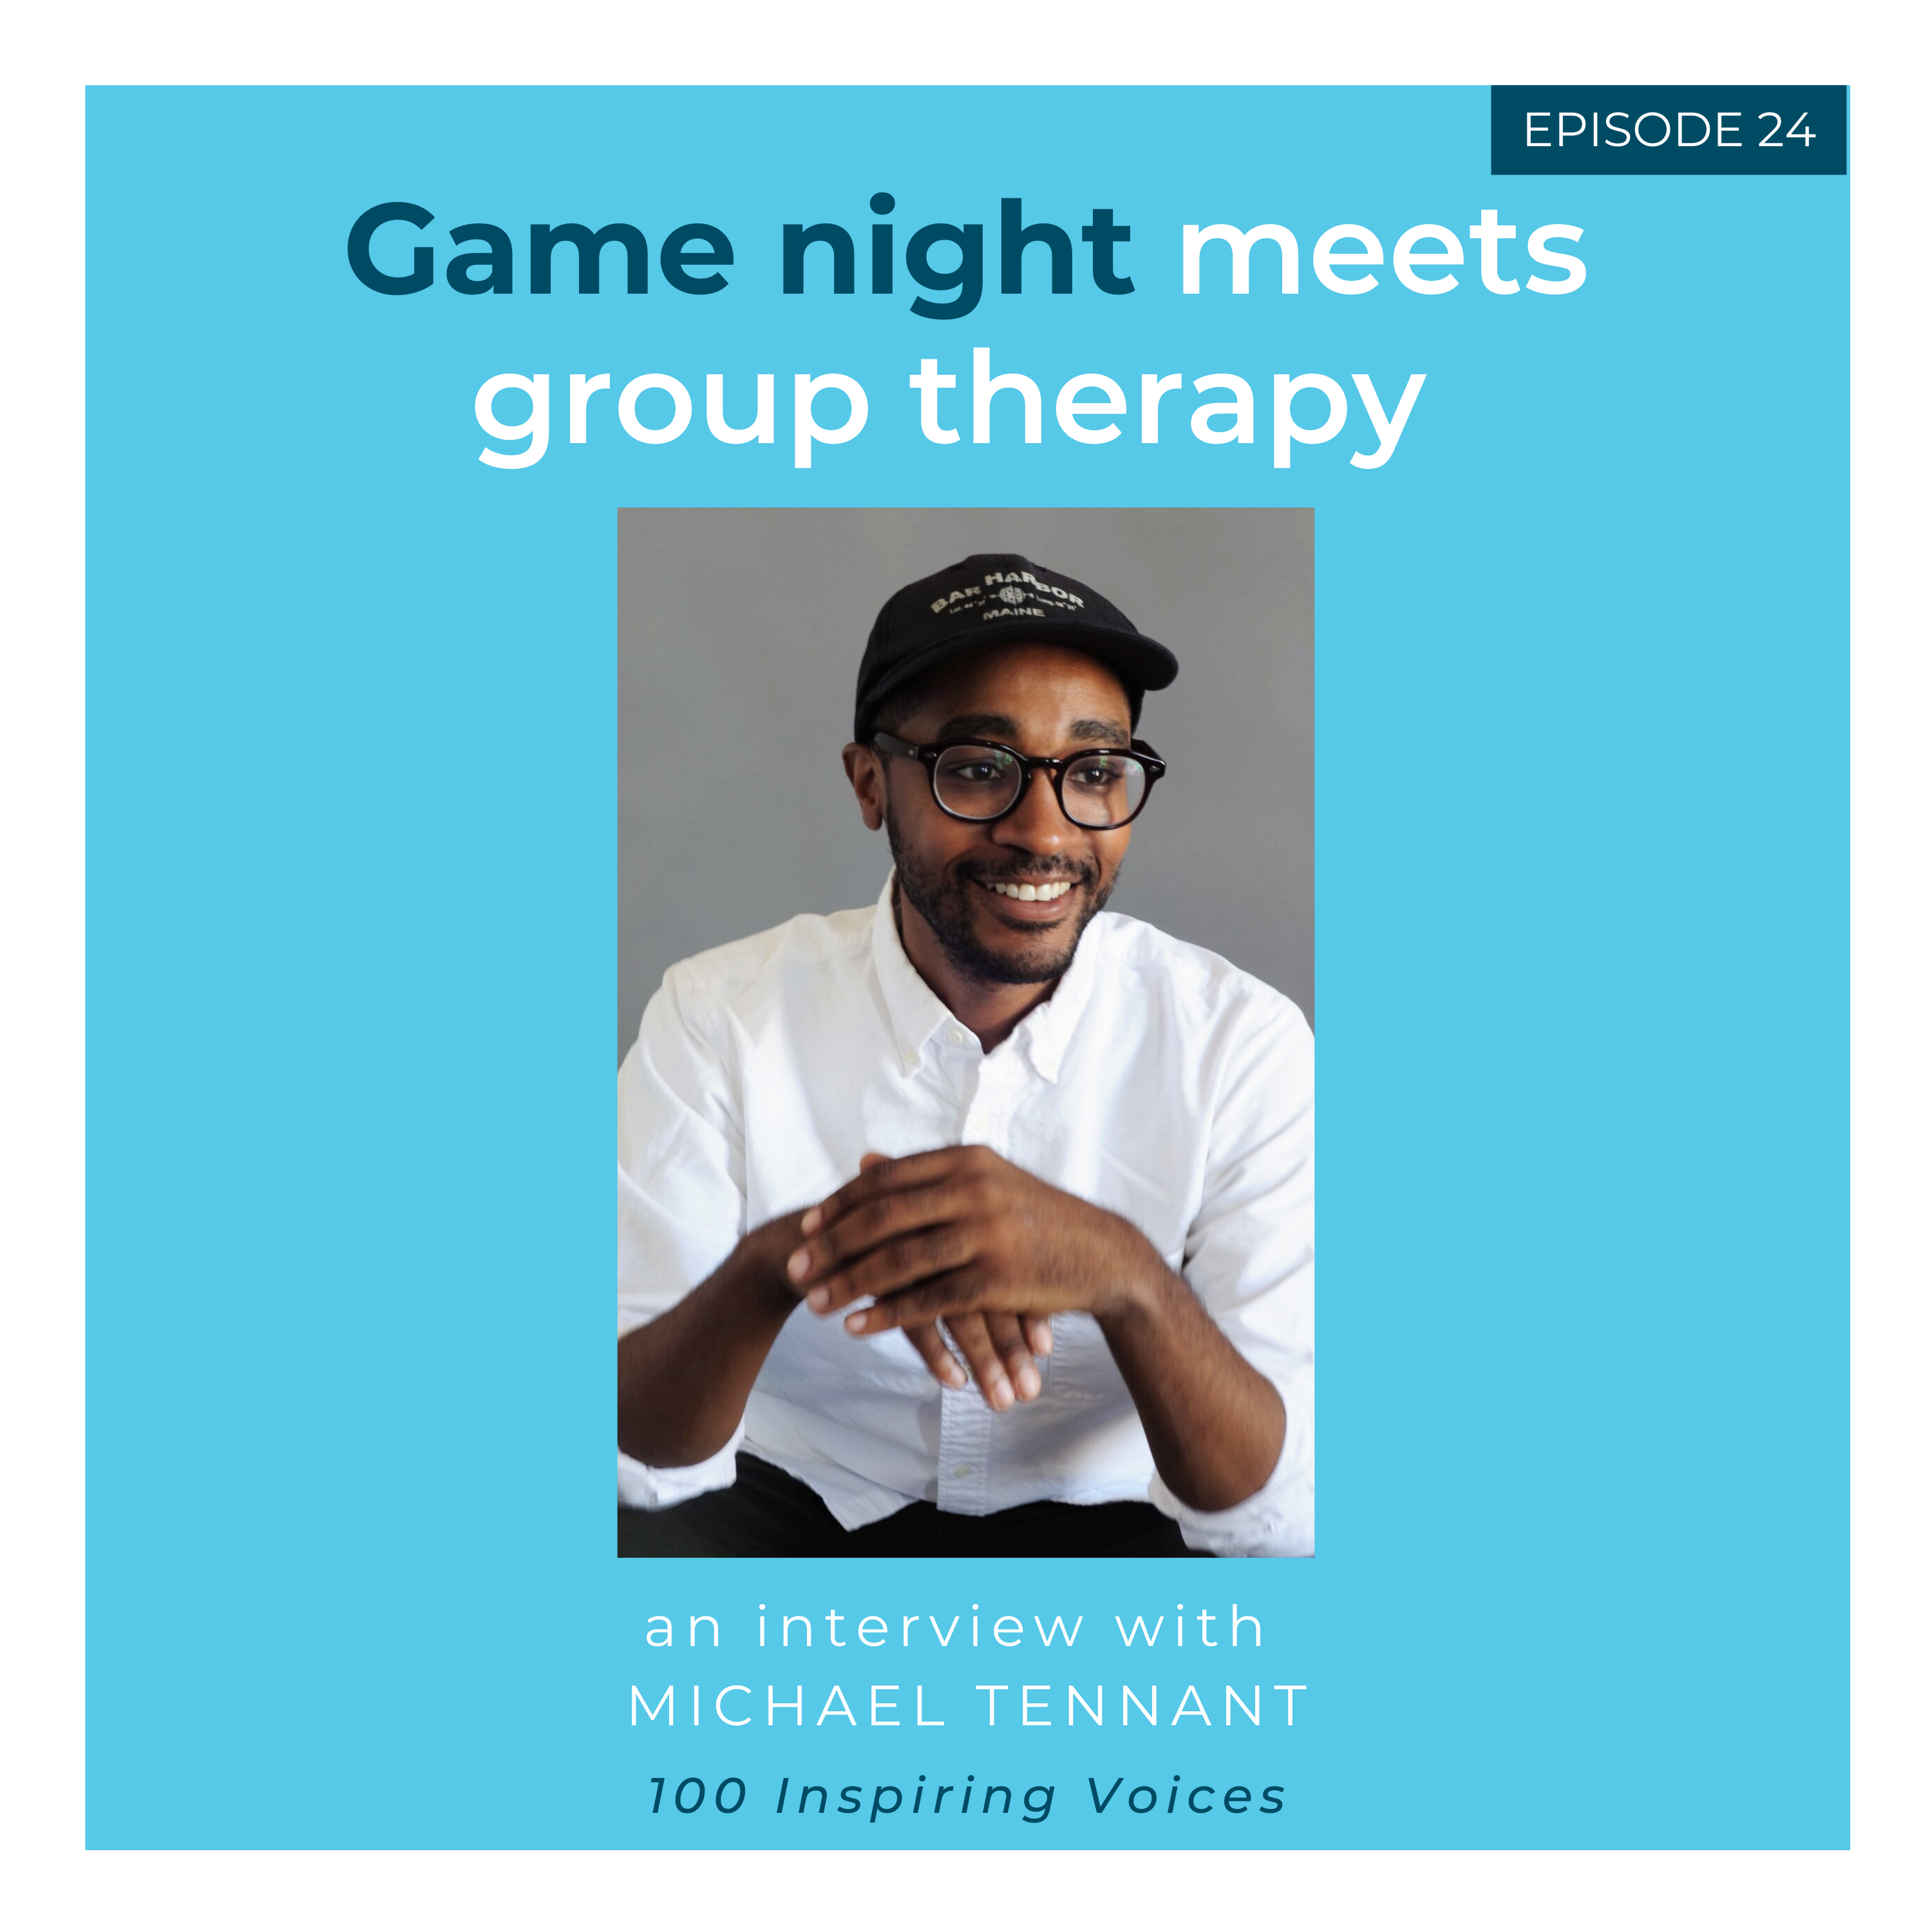 100 Inspiring Voices | Episode #24 | Michael Tennant | Game night meets group therapy